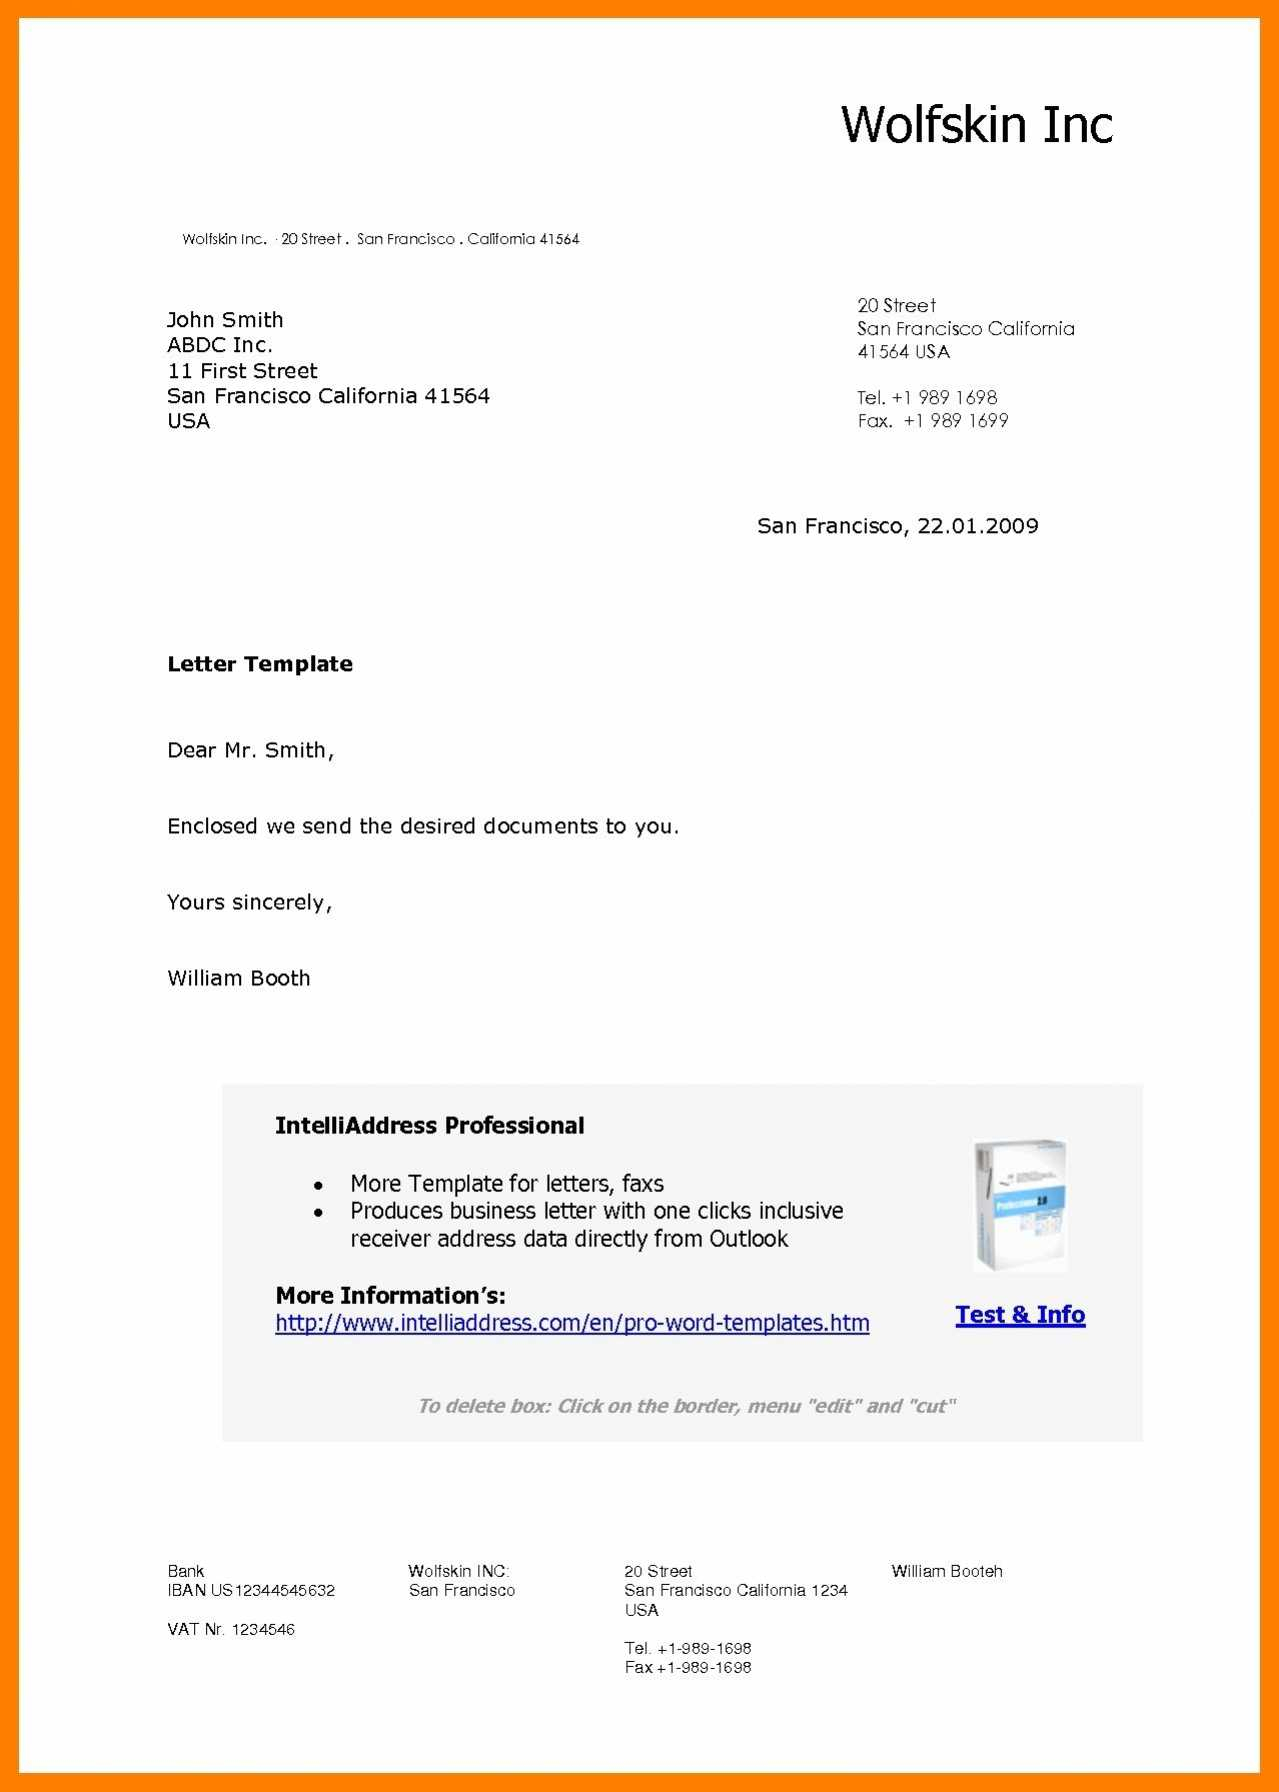 Letter From Santa Template Word - Beautiful Free Cover Letter Template Word